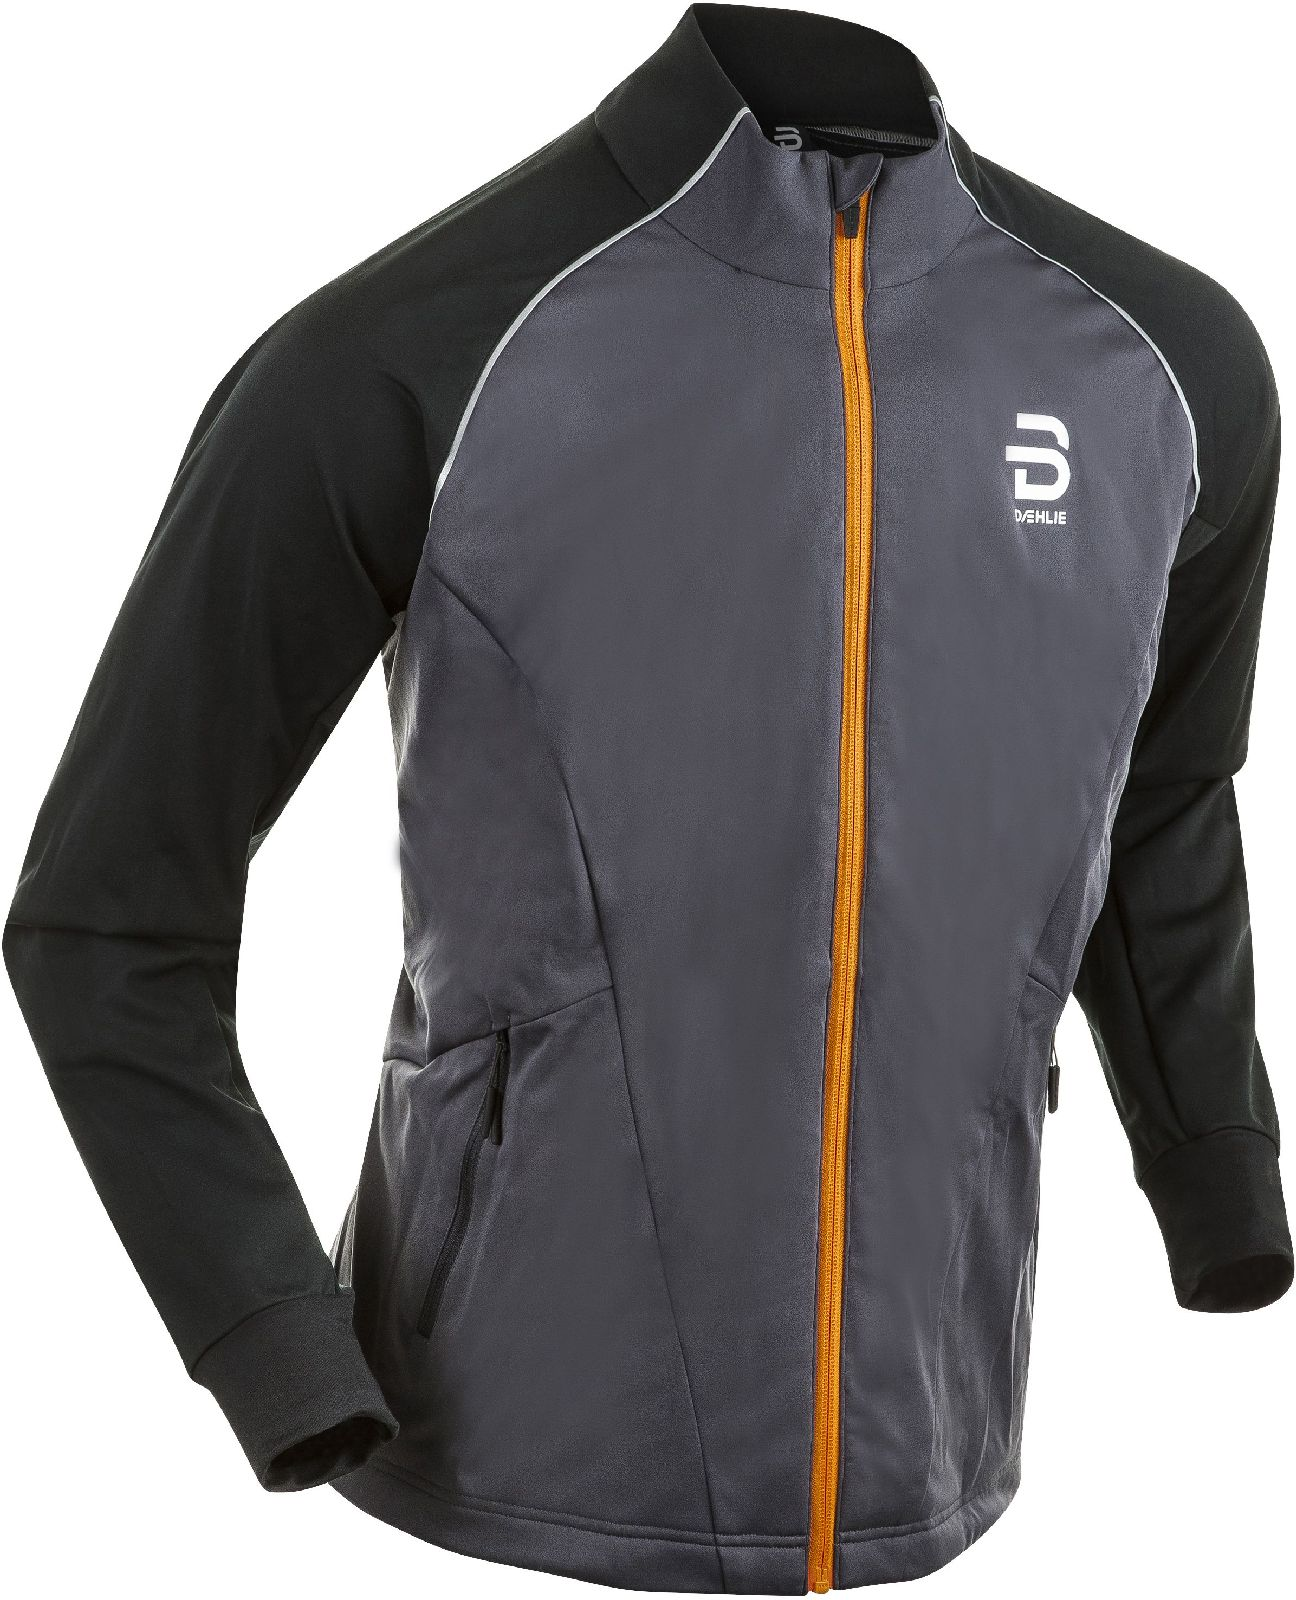 Bjorn Daehlie jacket ridge for men